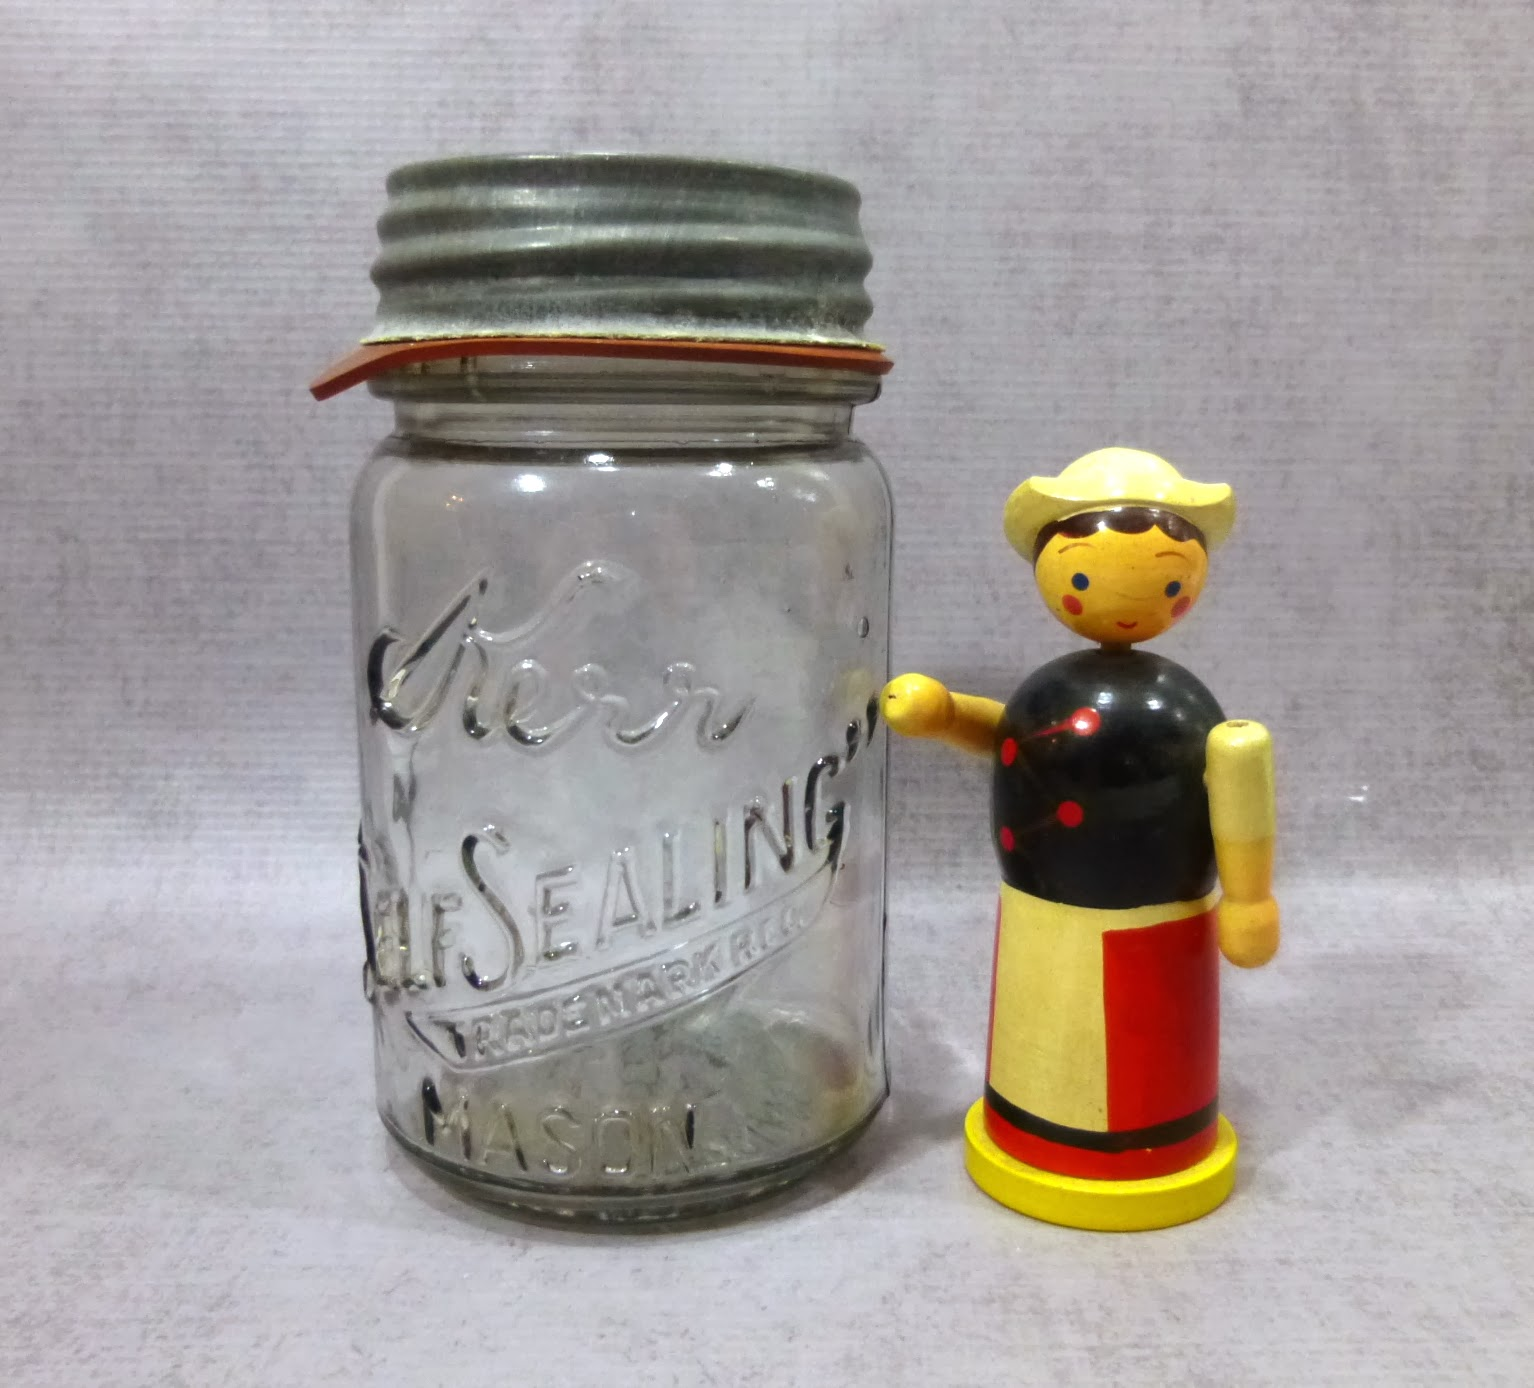 Dating old canning jars